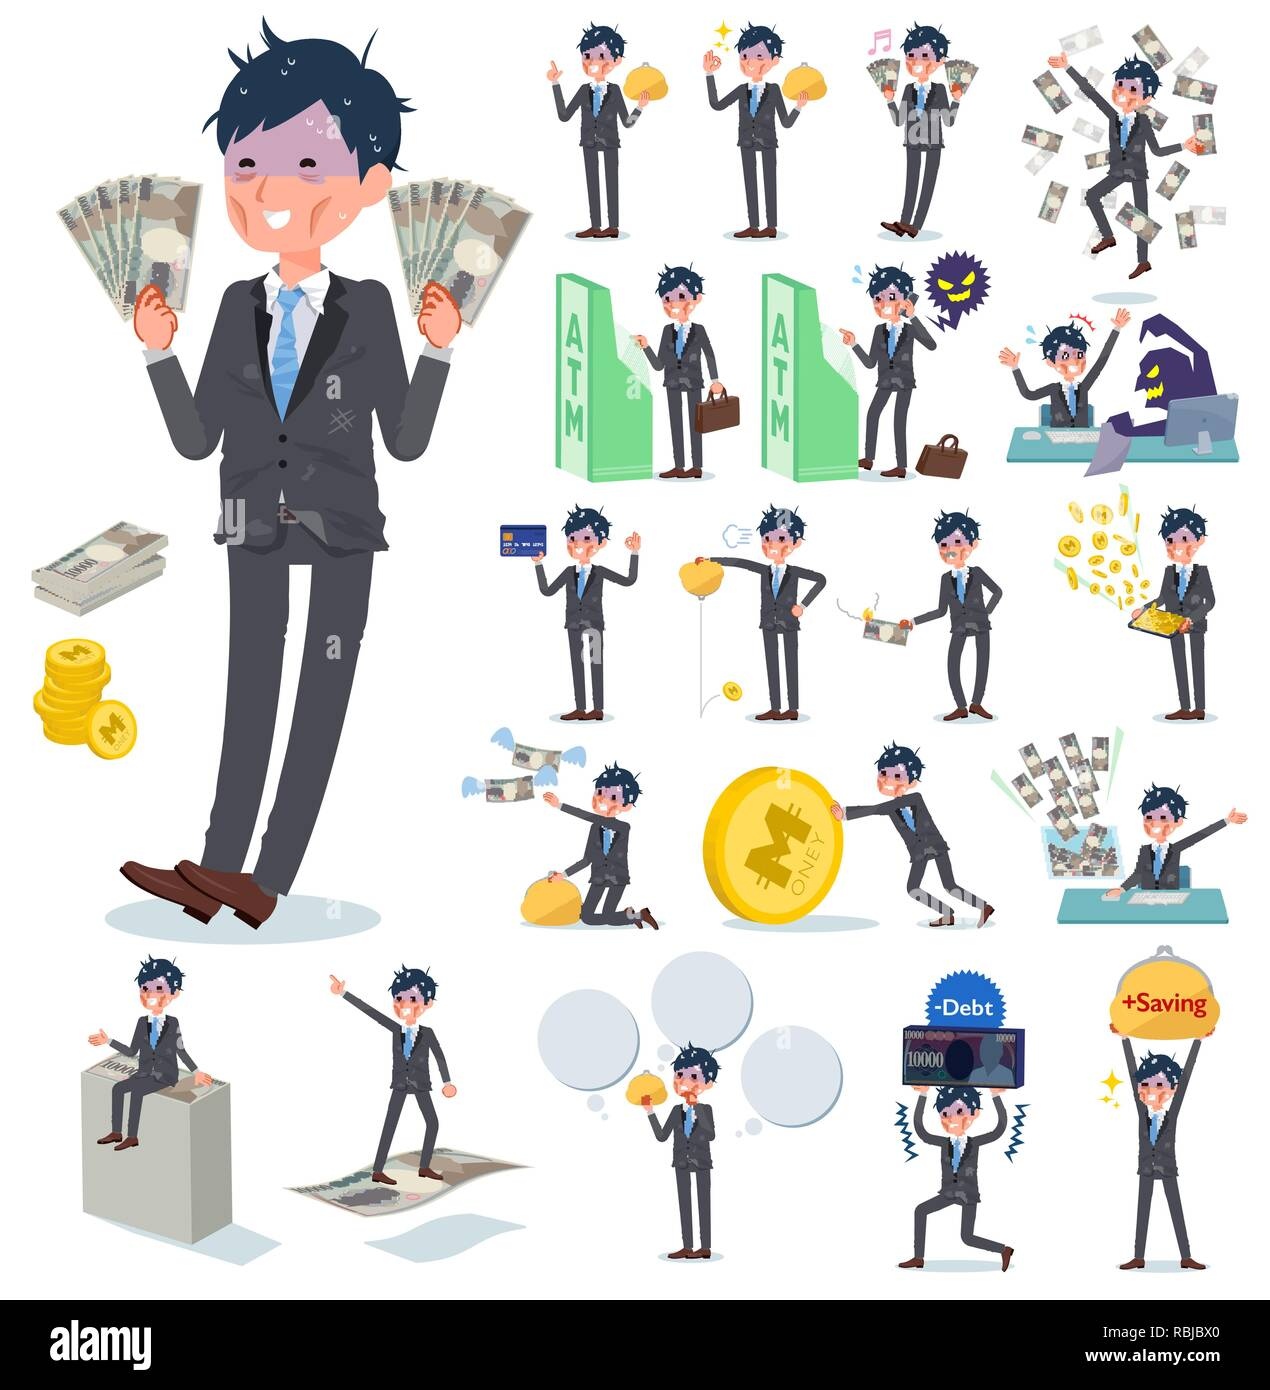 Satire Vector Vectors Stock Photos Satire Vector Vectors Stock